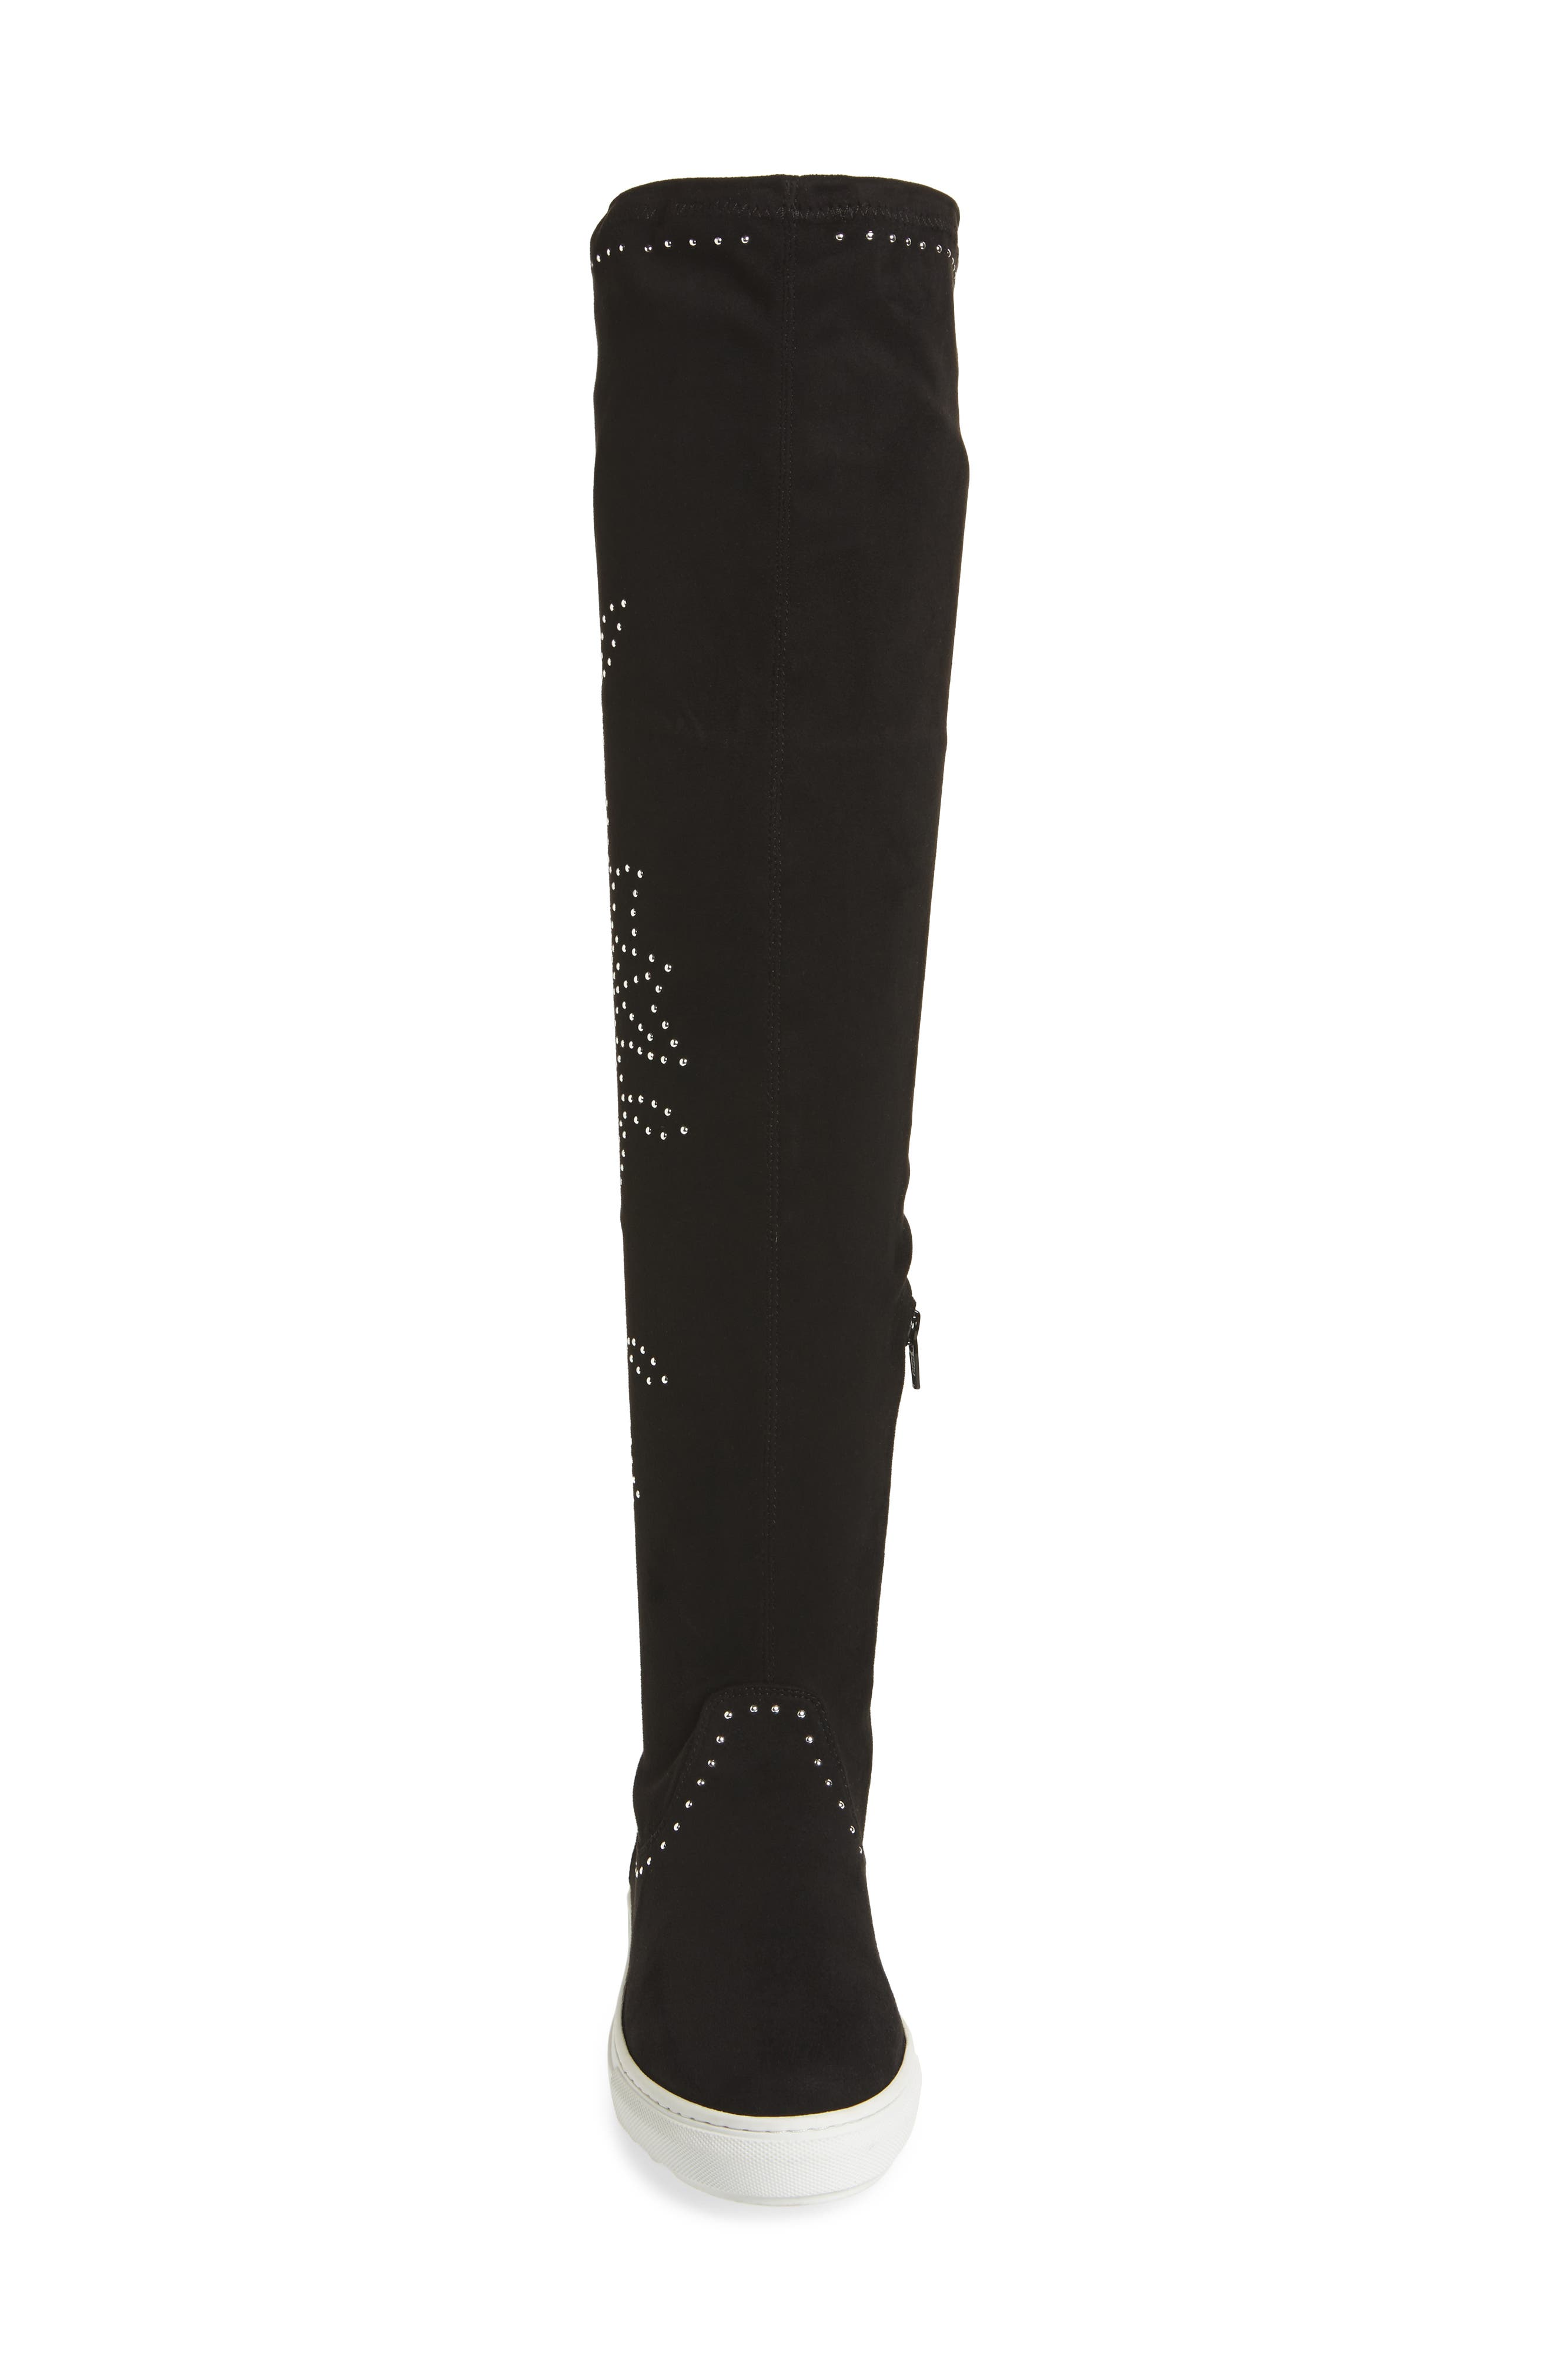 Plentee Over the Knee Boot,                             Alternate thumbnail 4, color,                             Black Stretch Suede